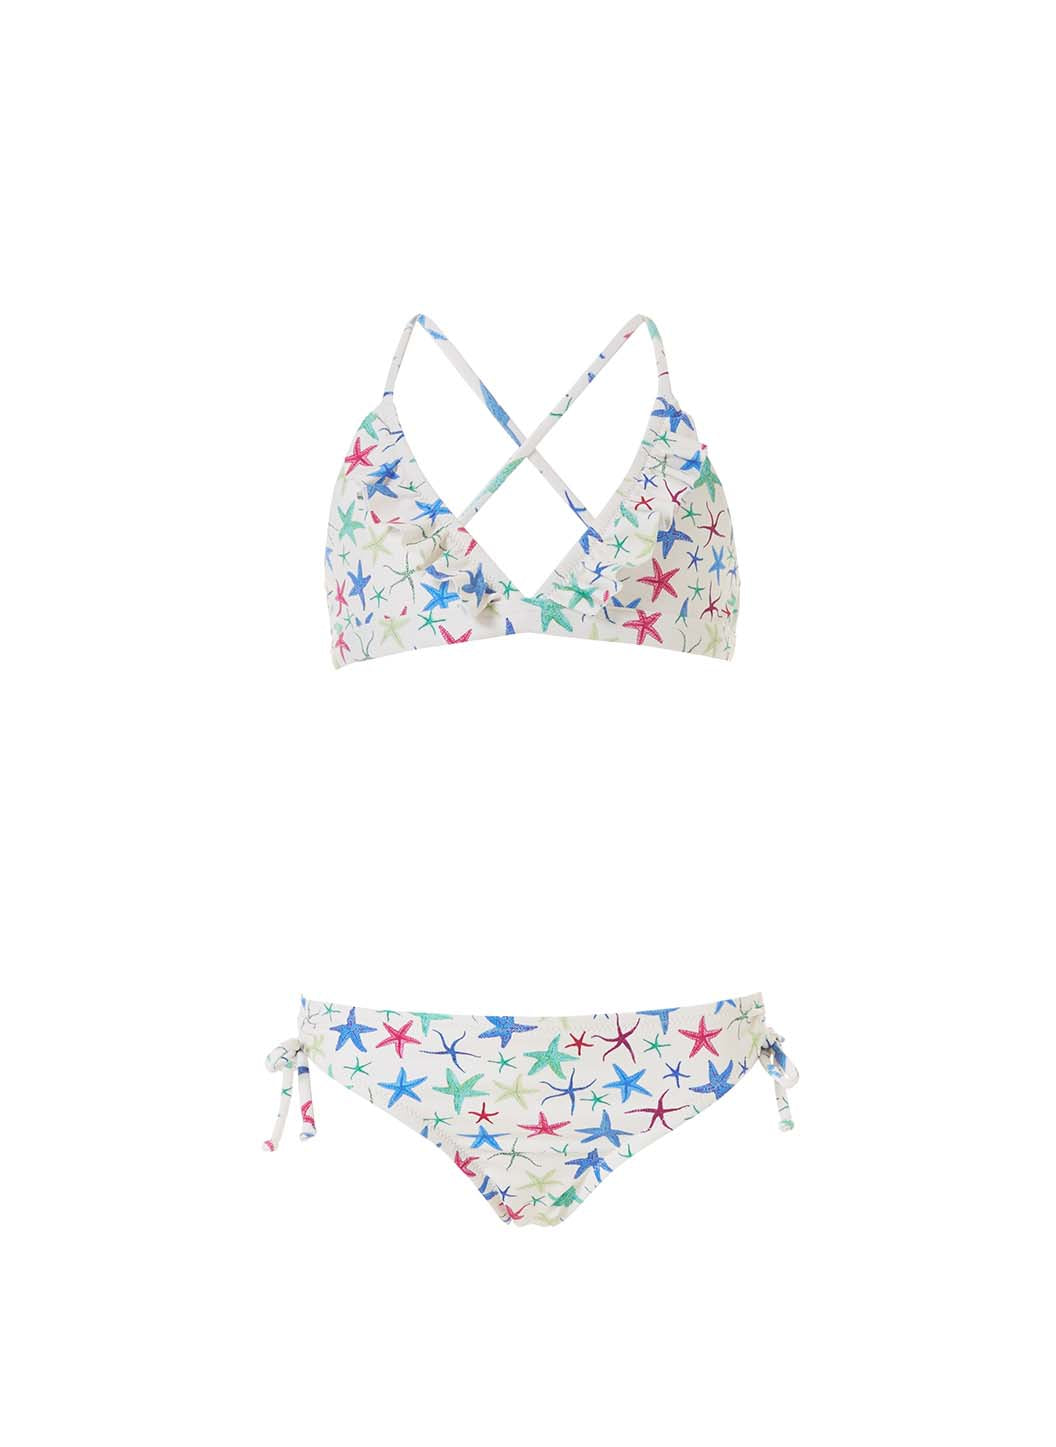 Baby New York Starfish Triangle Bikini